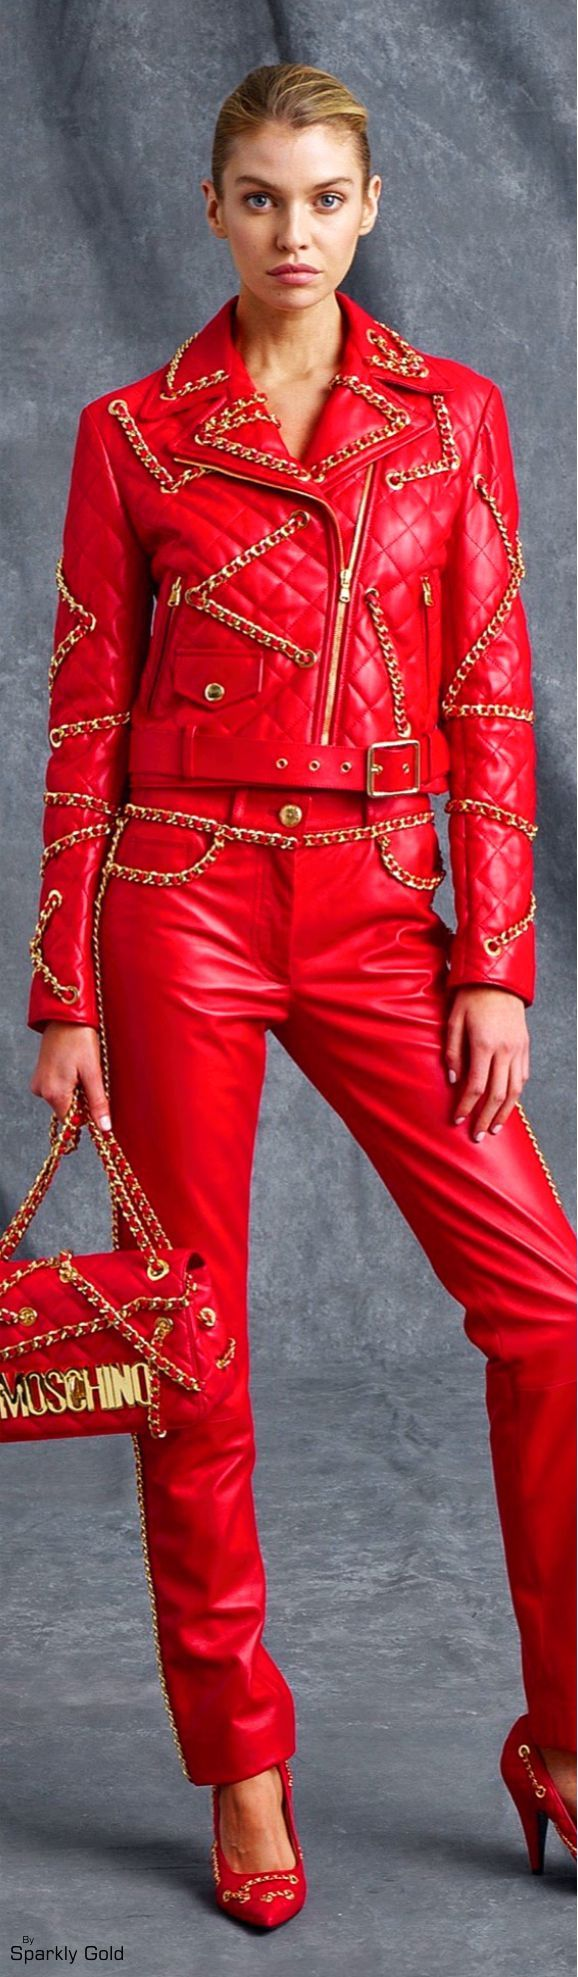 Moschino Resort 2016..LOVE the Jacket, Shoes, and Pants, but wear them at different times.